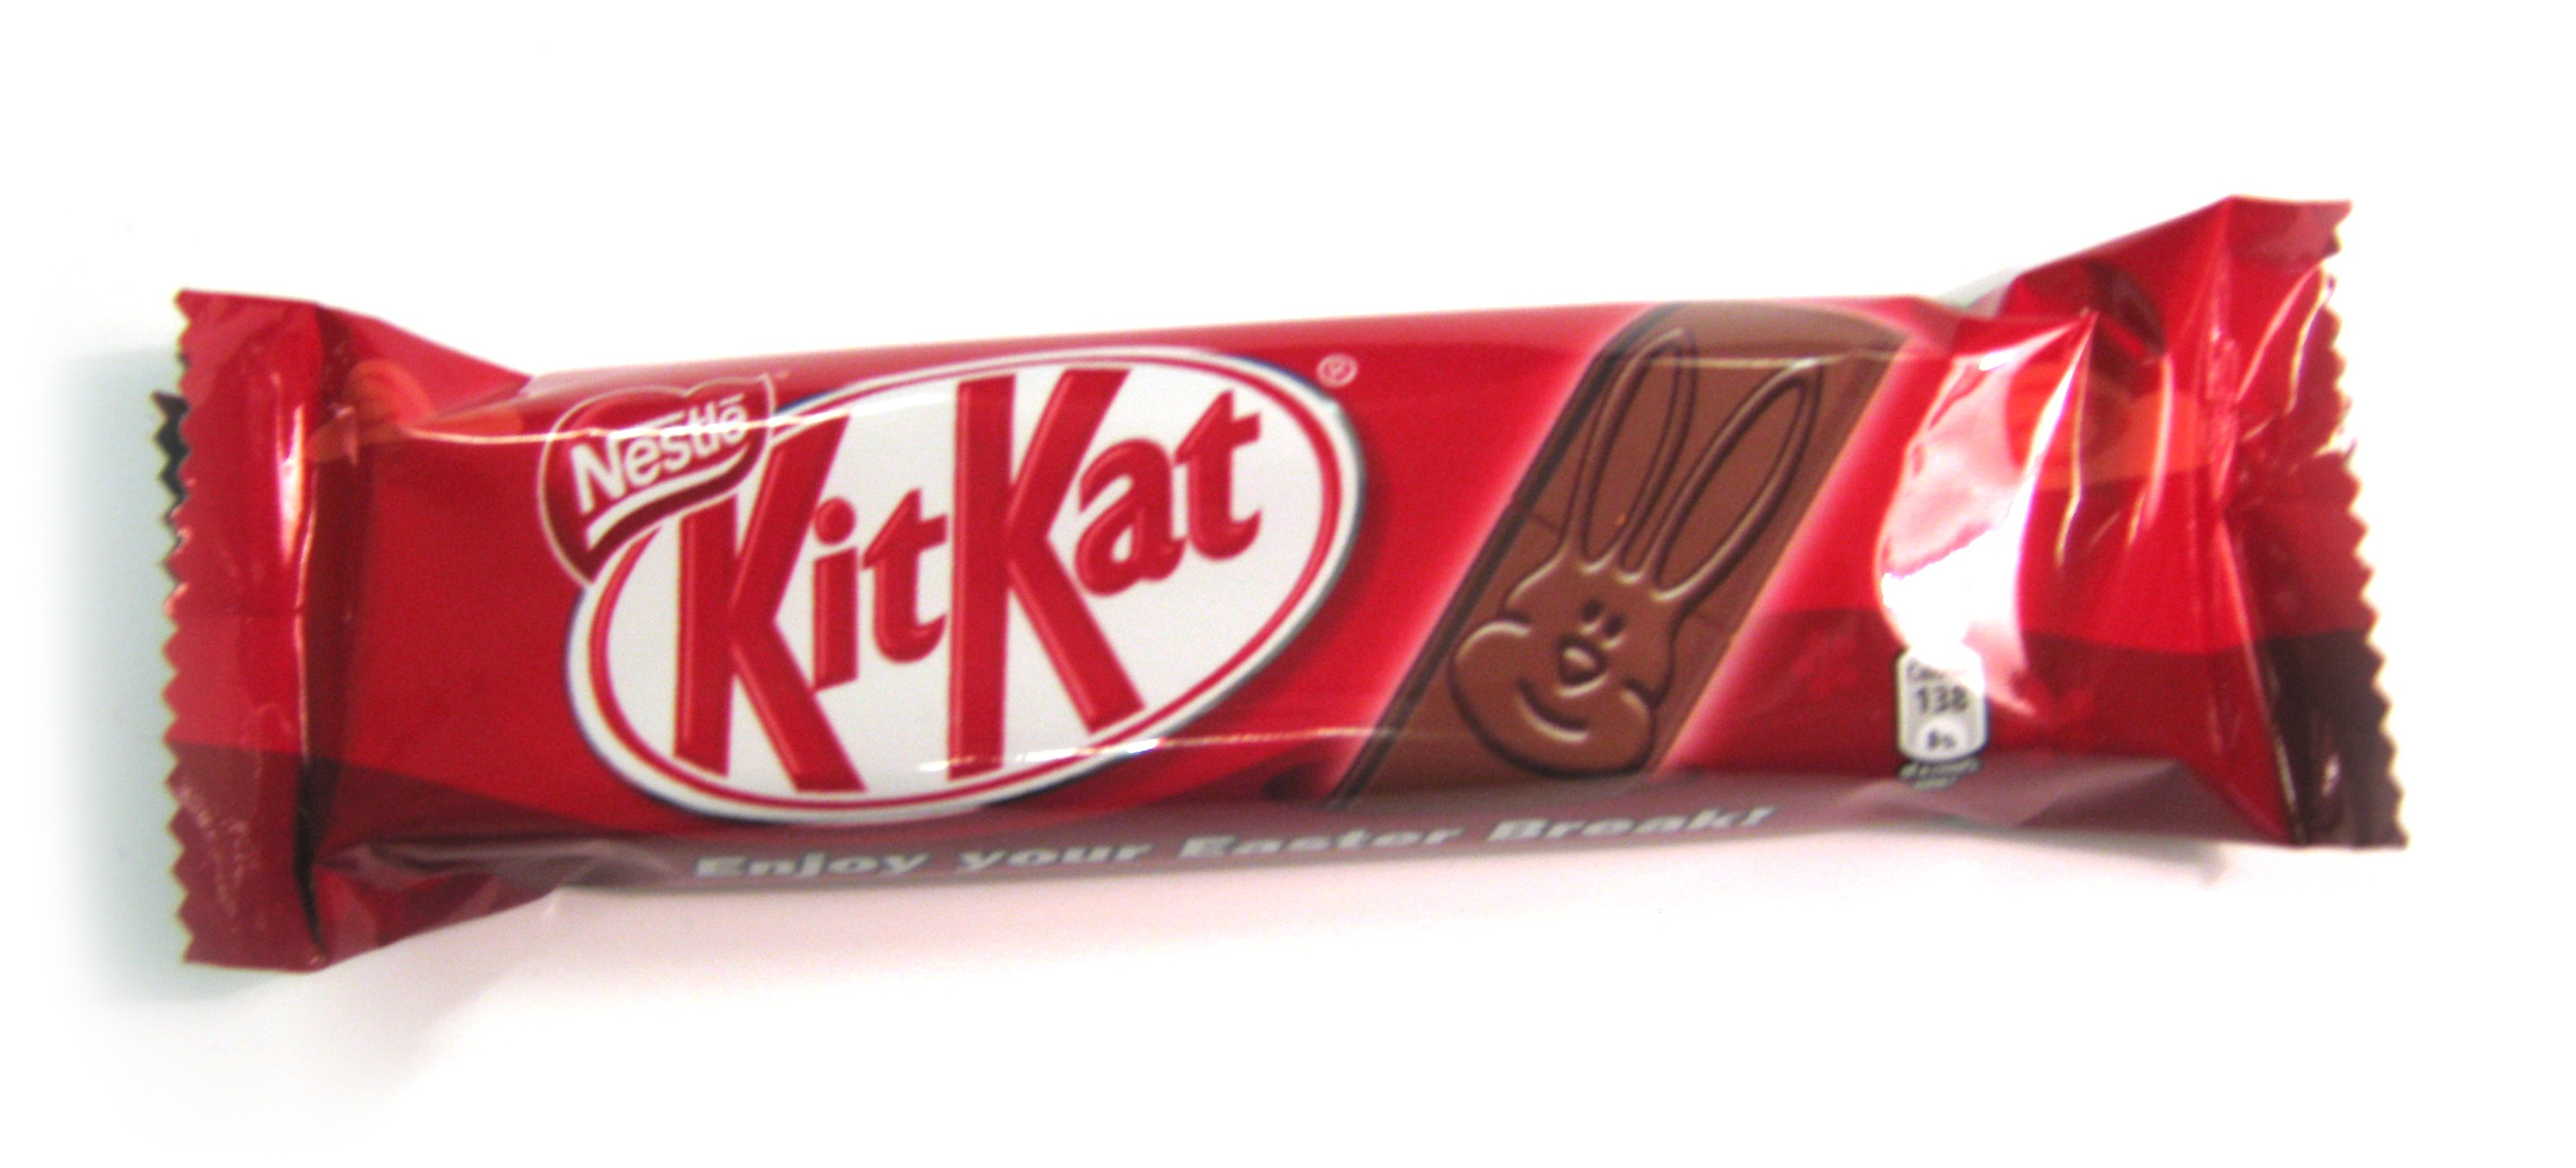 Most Famous Chocolate Brands | Globalinfo4all